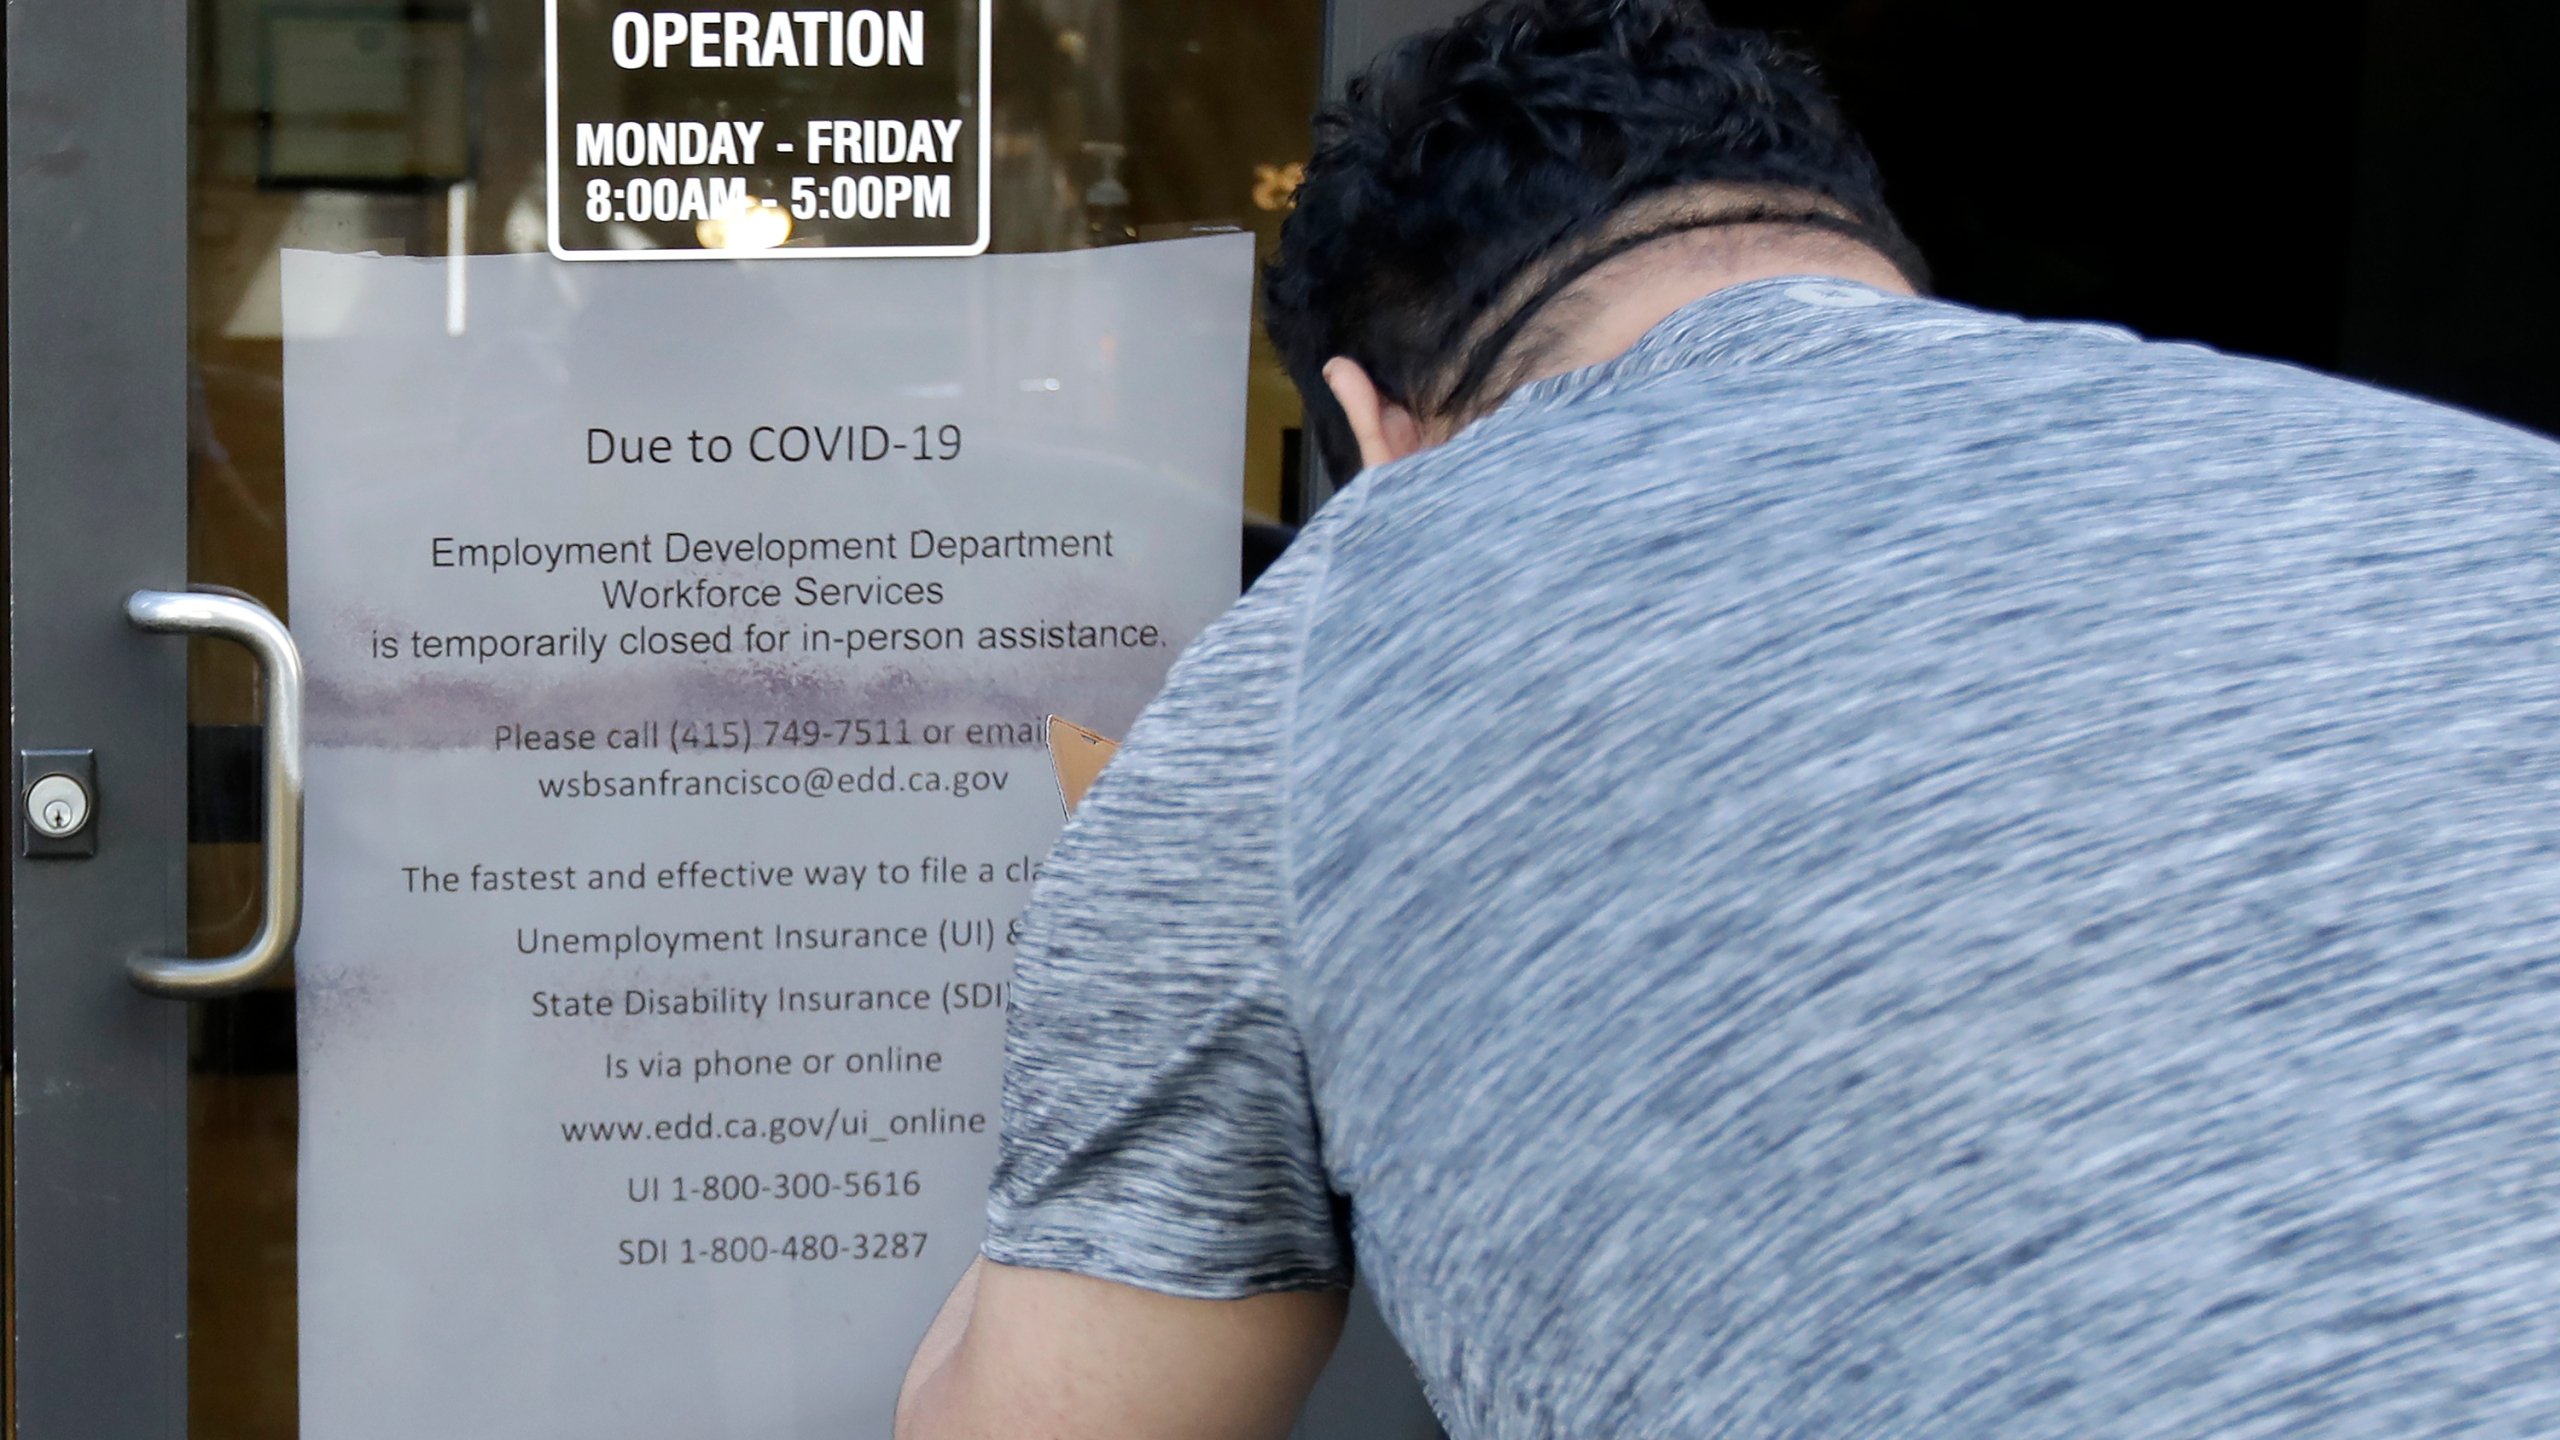 In this March 26, 2020 file photo, a man takes a photo of a sign advising that a Employment Development Department office in San Francisco is closed due to coronavirus concerns. (Jeff Chiu/Associated Press)